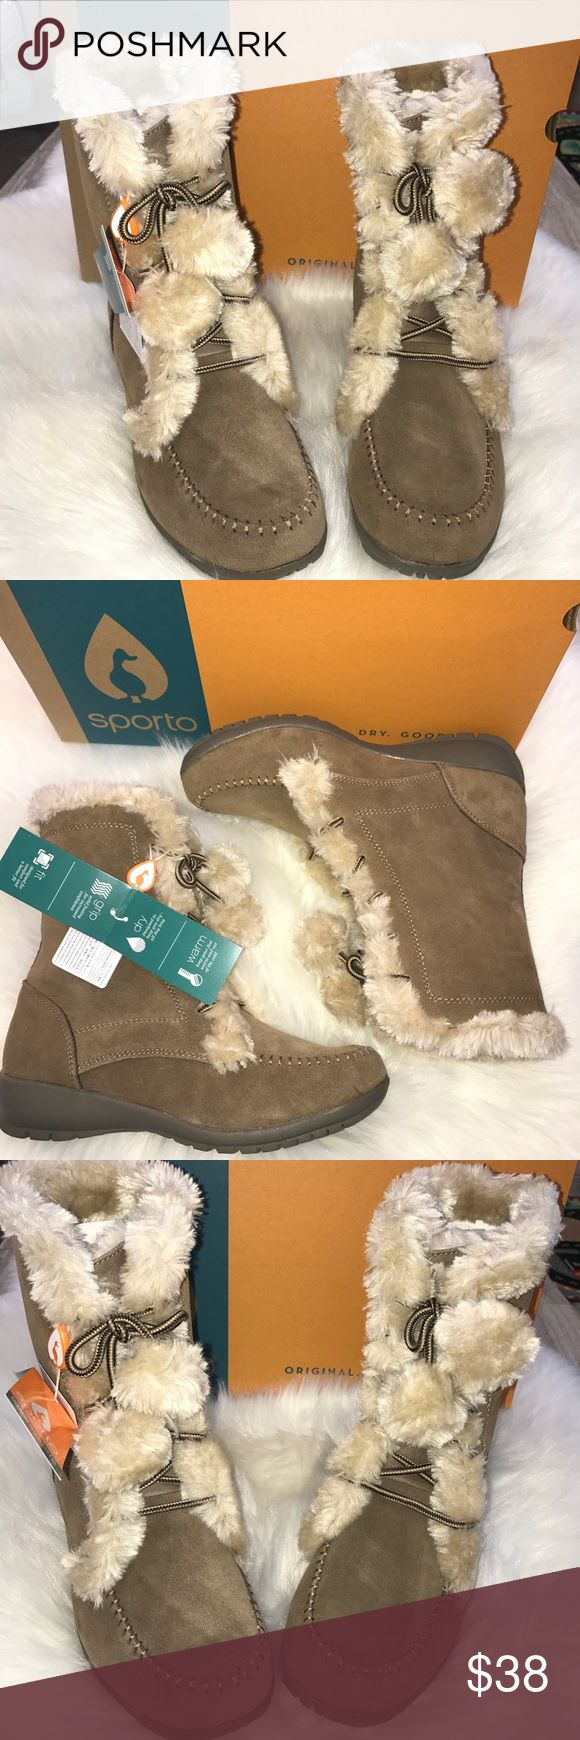 Sporto women's winter boots Brand new. Keep warm and dry  in the winter. Sand color Sporto Shoes Winter & Rain Boots